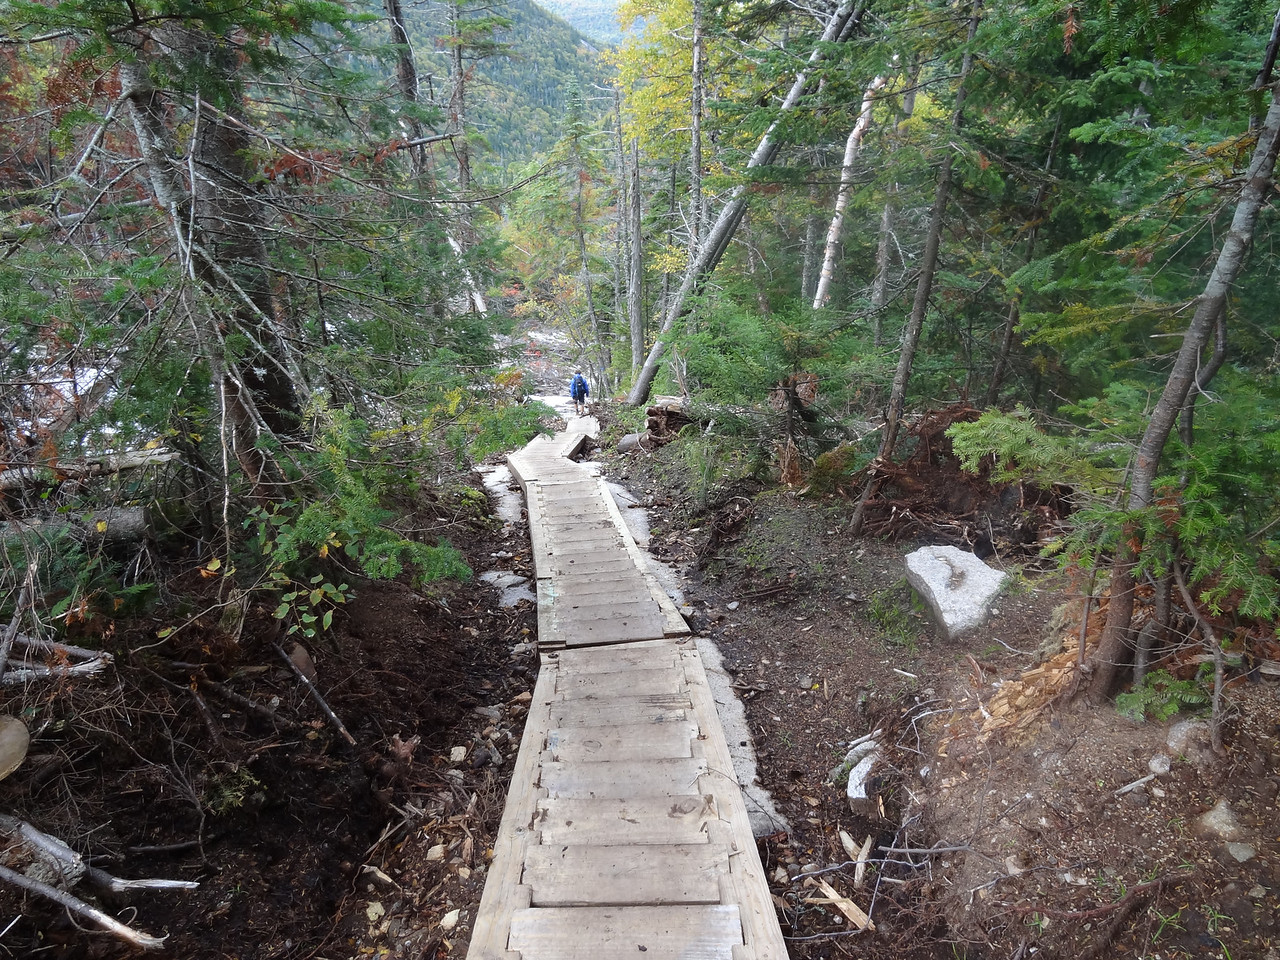 This 218 step staircase was installed because of the hurricane mudslide.